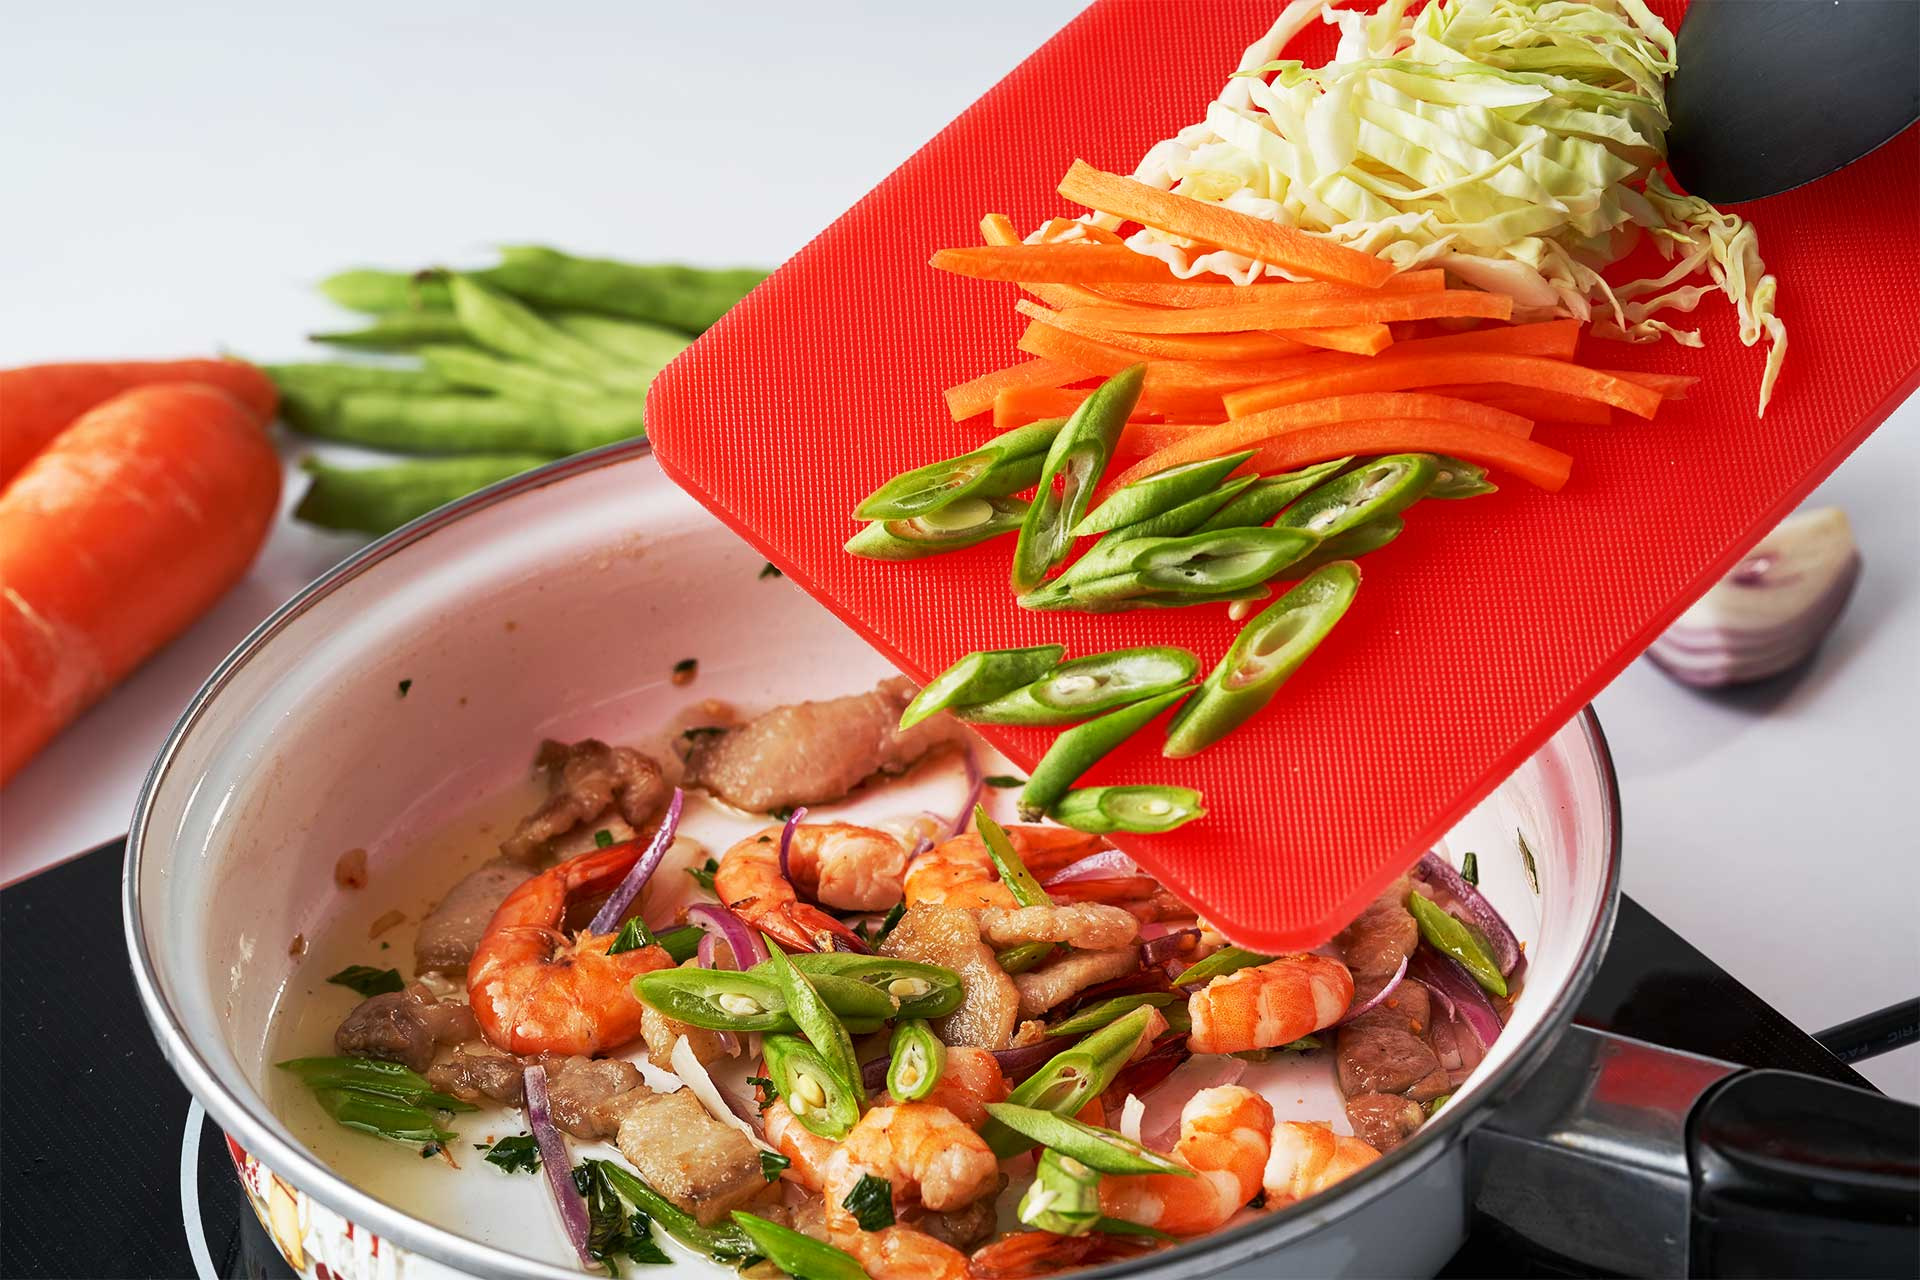 Cook the shrimps and pork